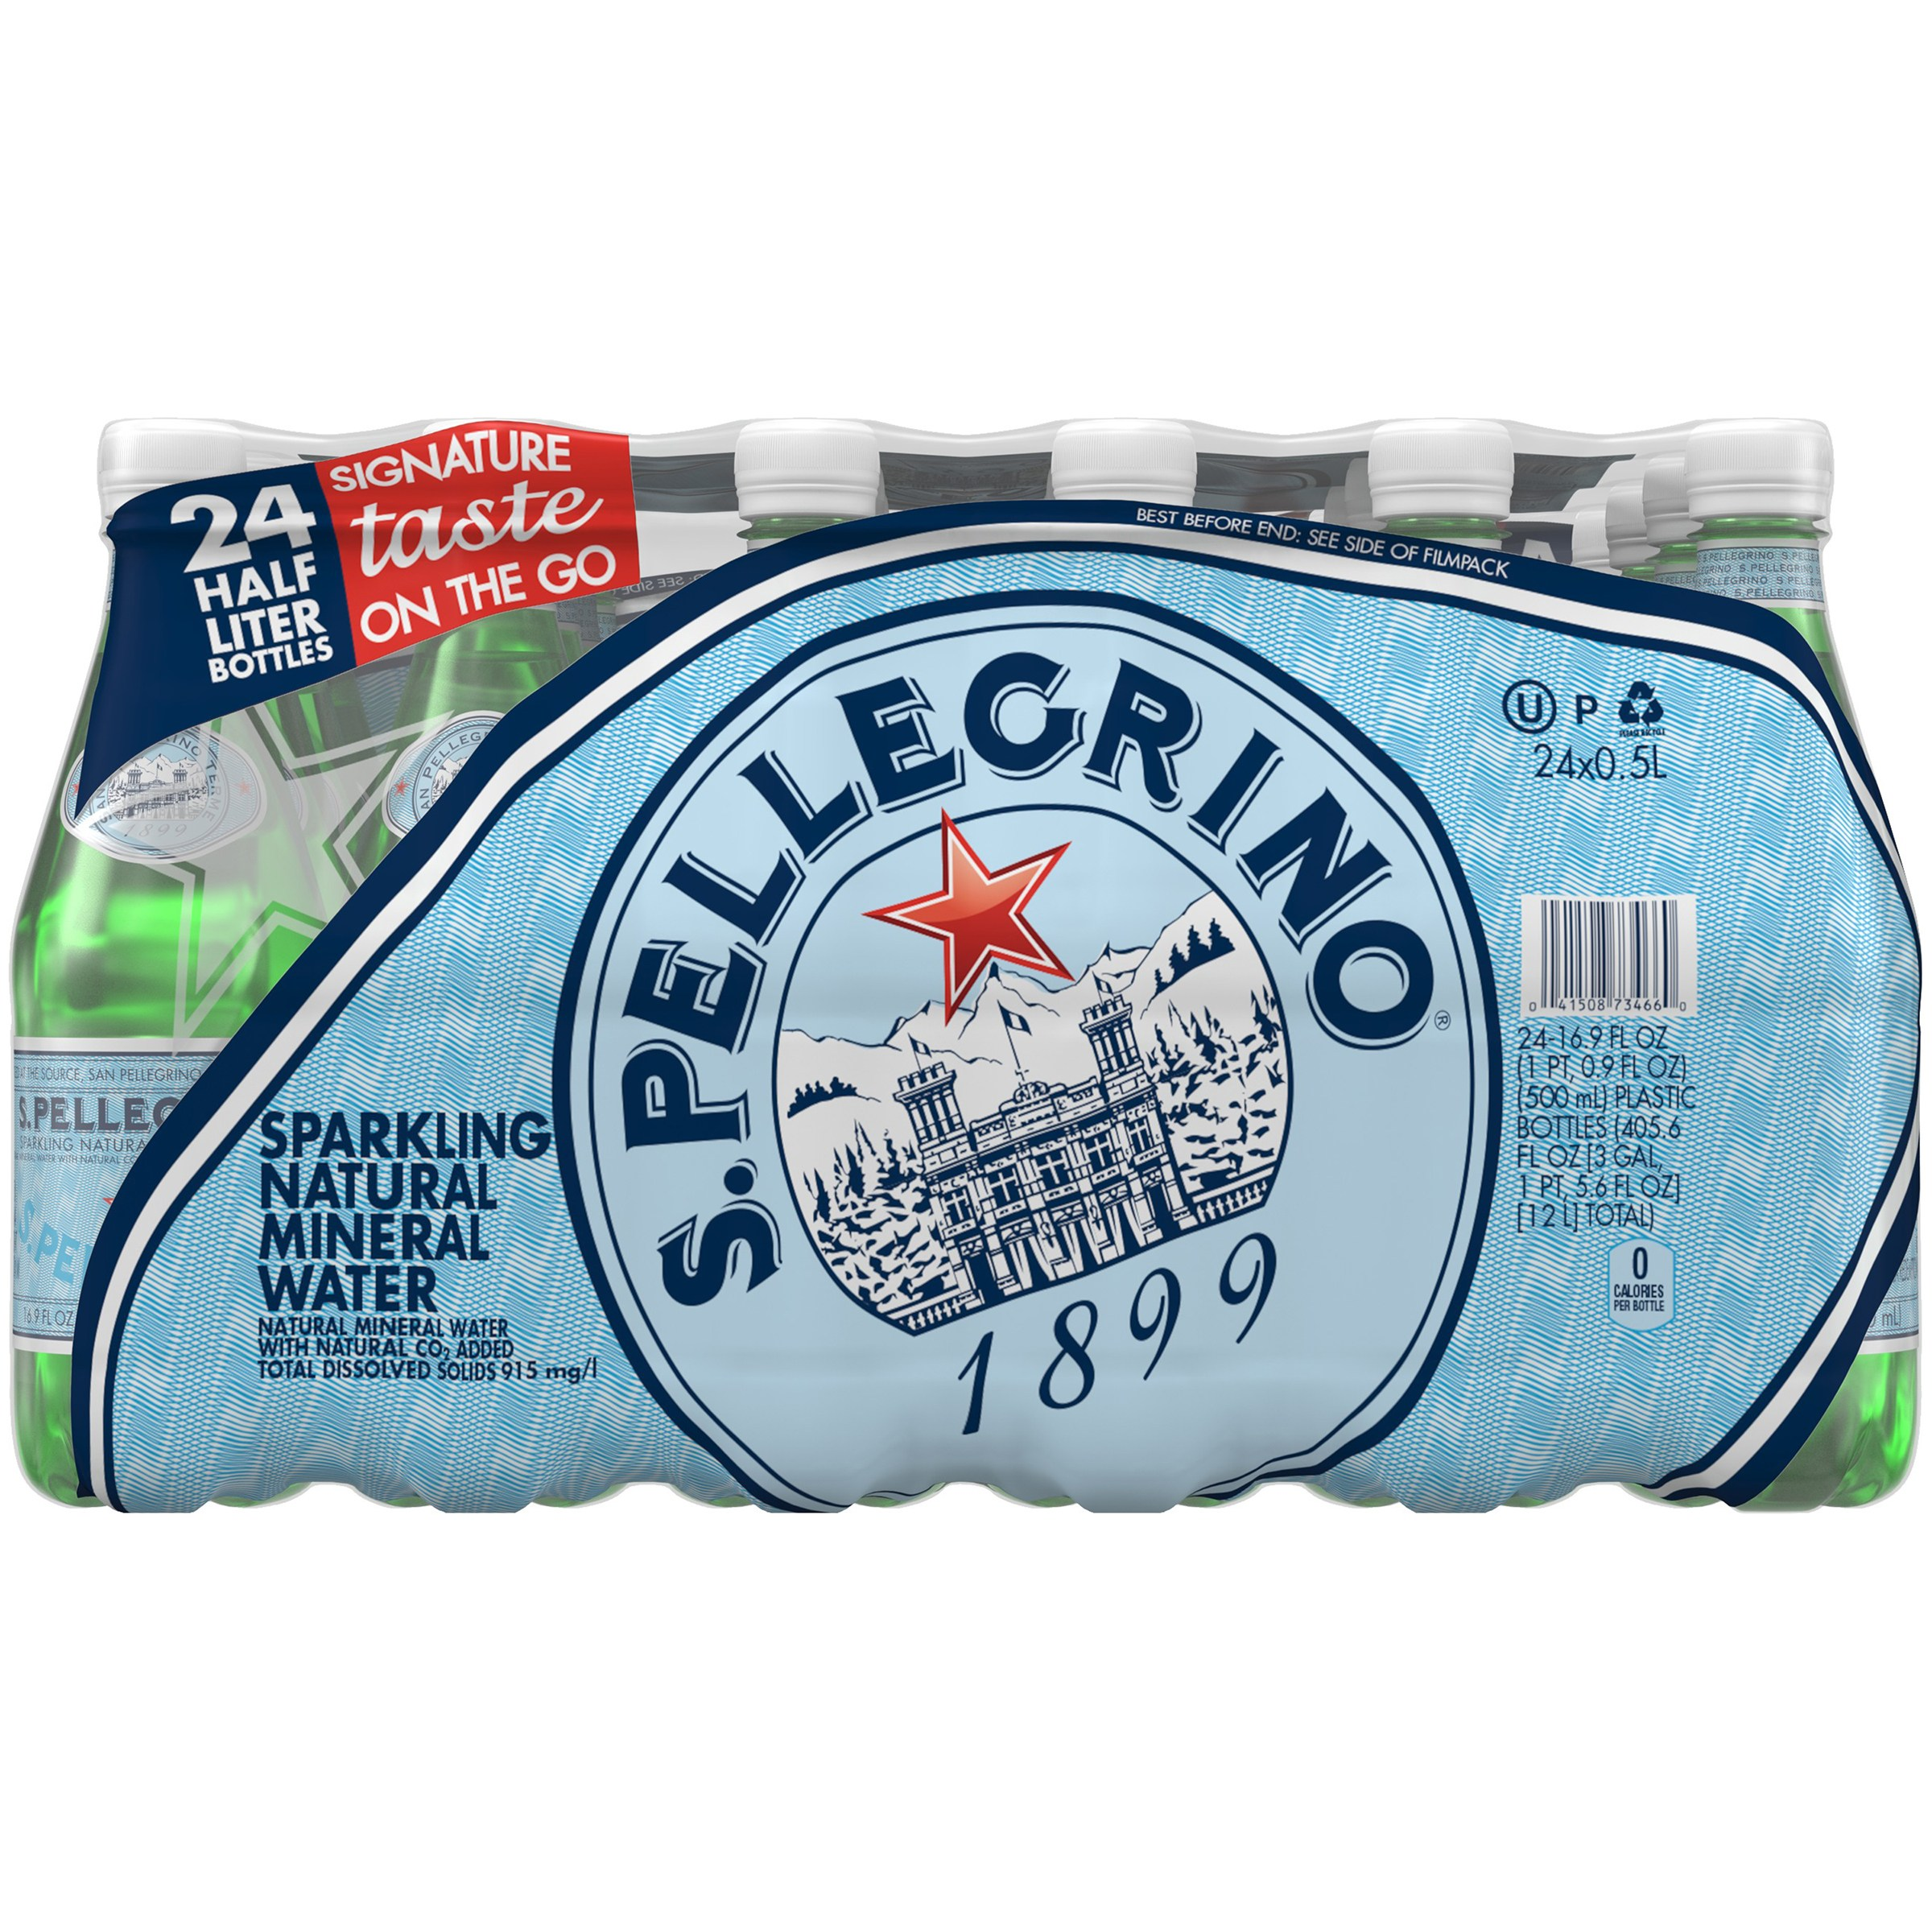 San Pellegrino Sparkling Natural Mineral Water, 16.9-ounce plastic bottles, pack of 24